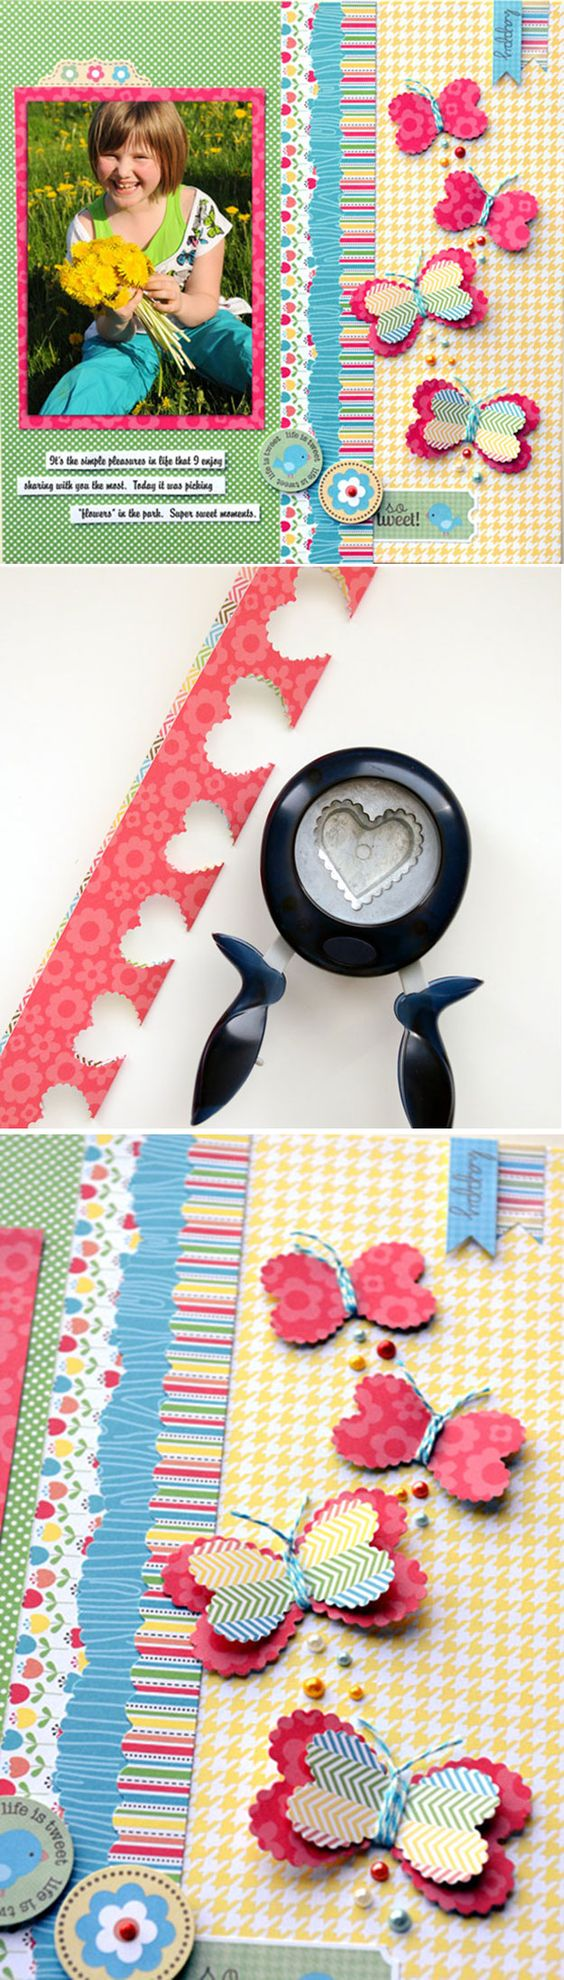 Cheap and Easy DIY Scrapbook Idea Layouts | Heart Butterflies by DIY Ready at http://diyready.com/cool-scrapbook-ideas-you-should-make/: